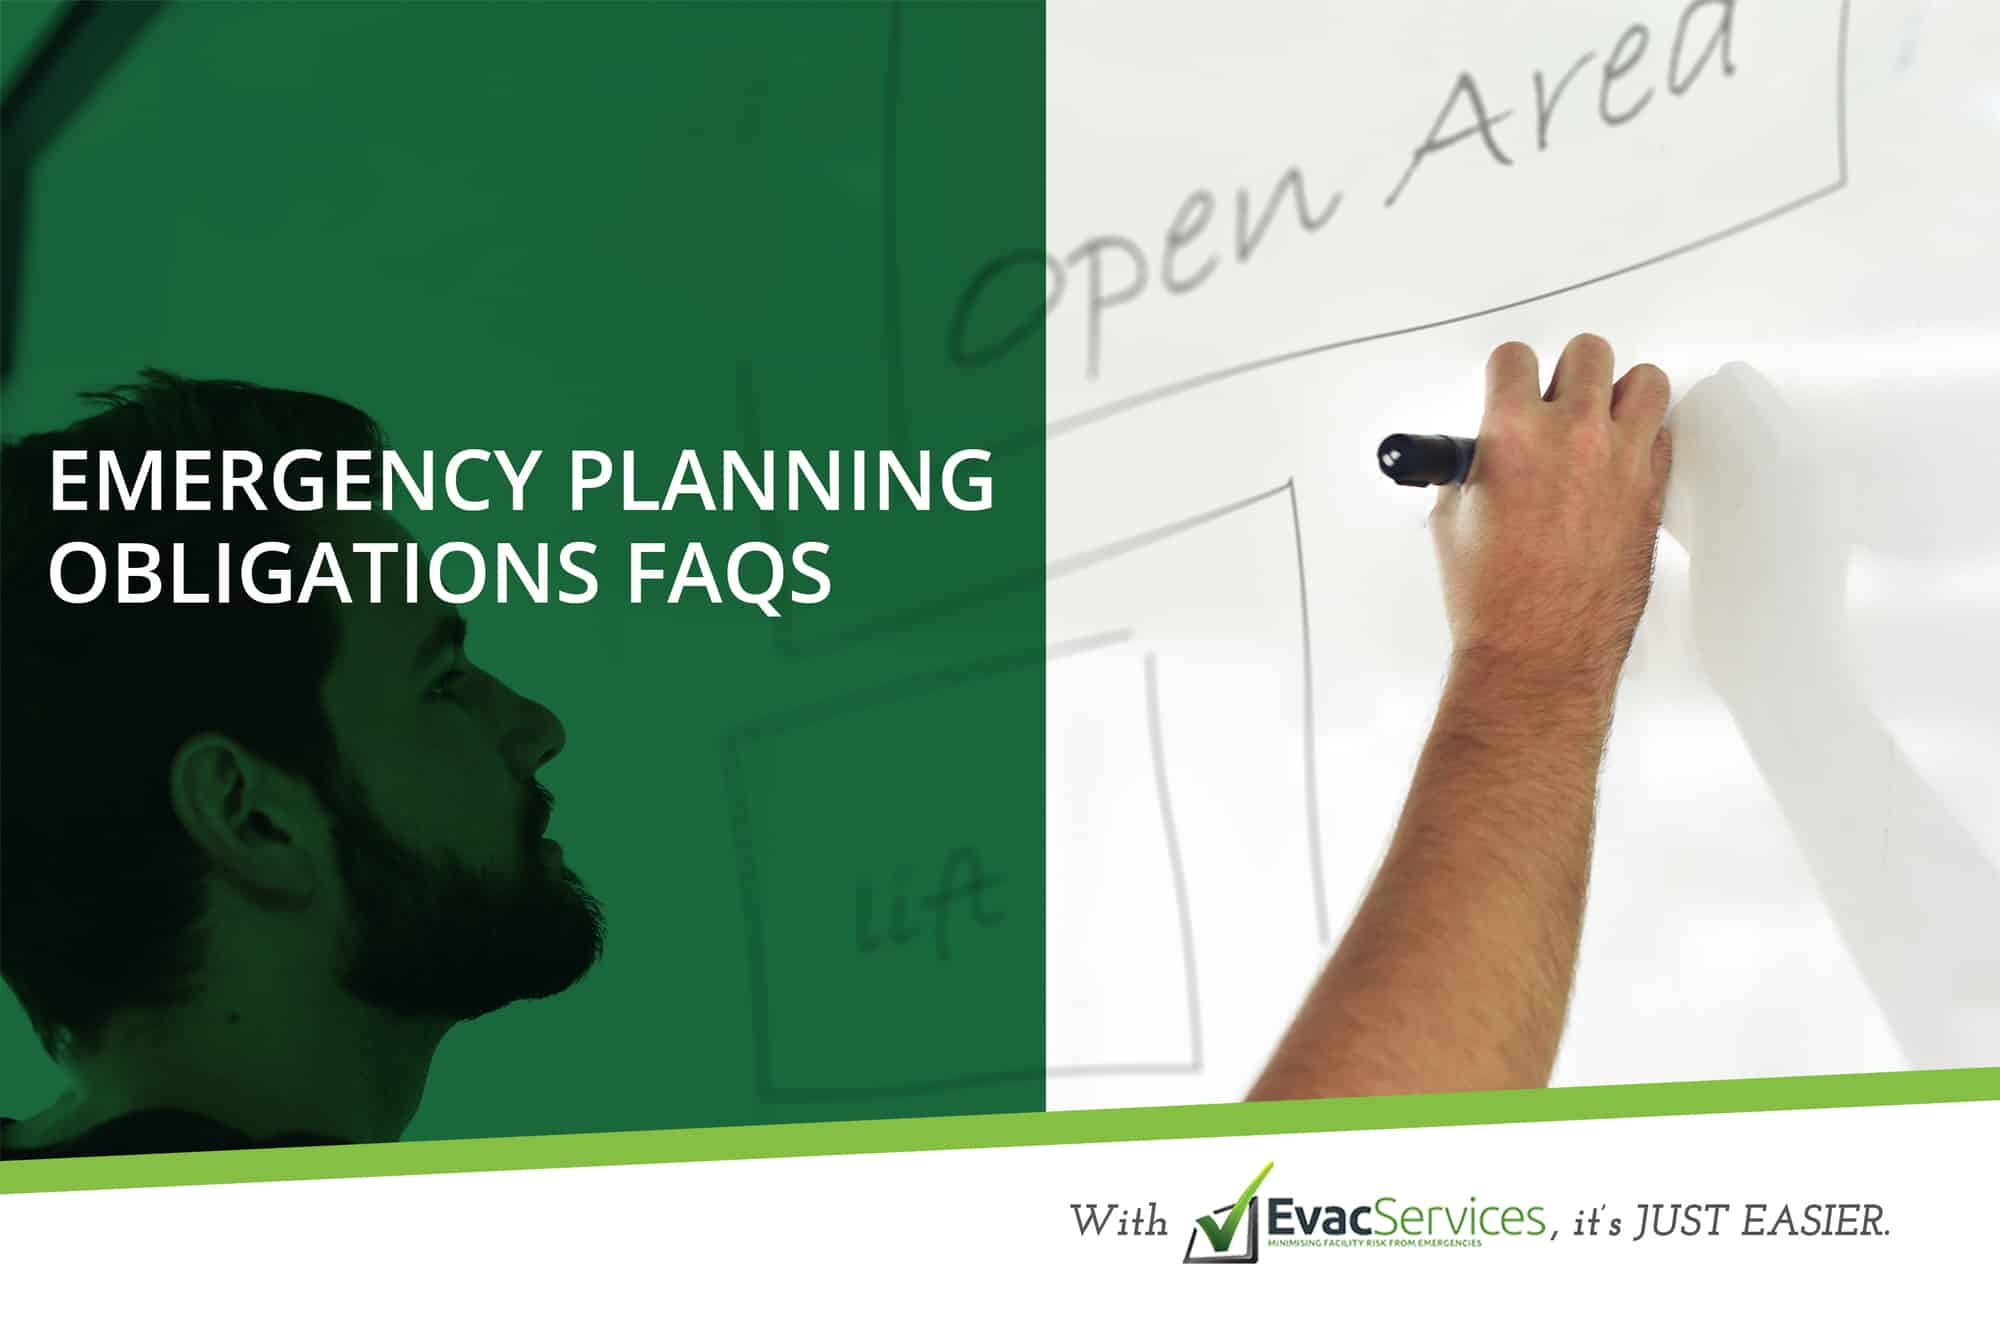 emergency planning obligations